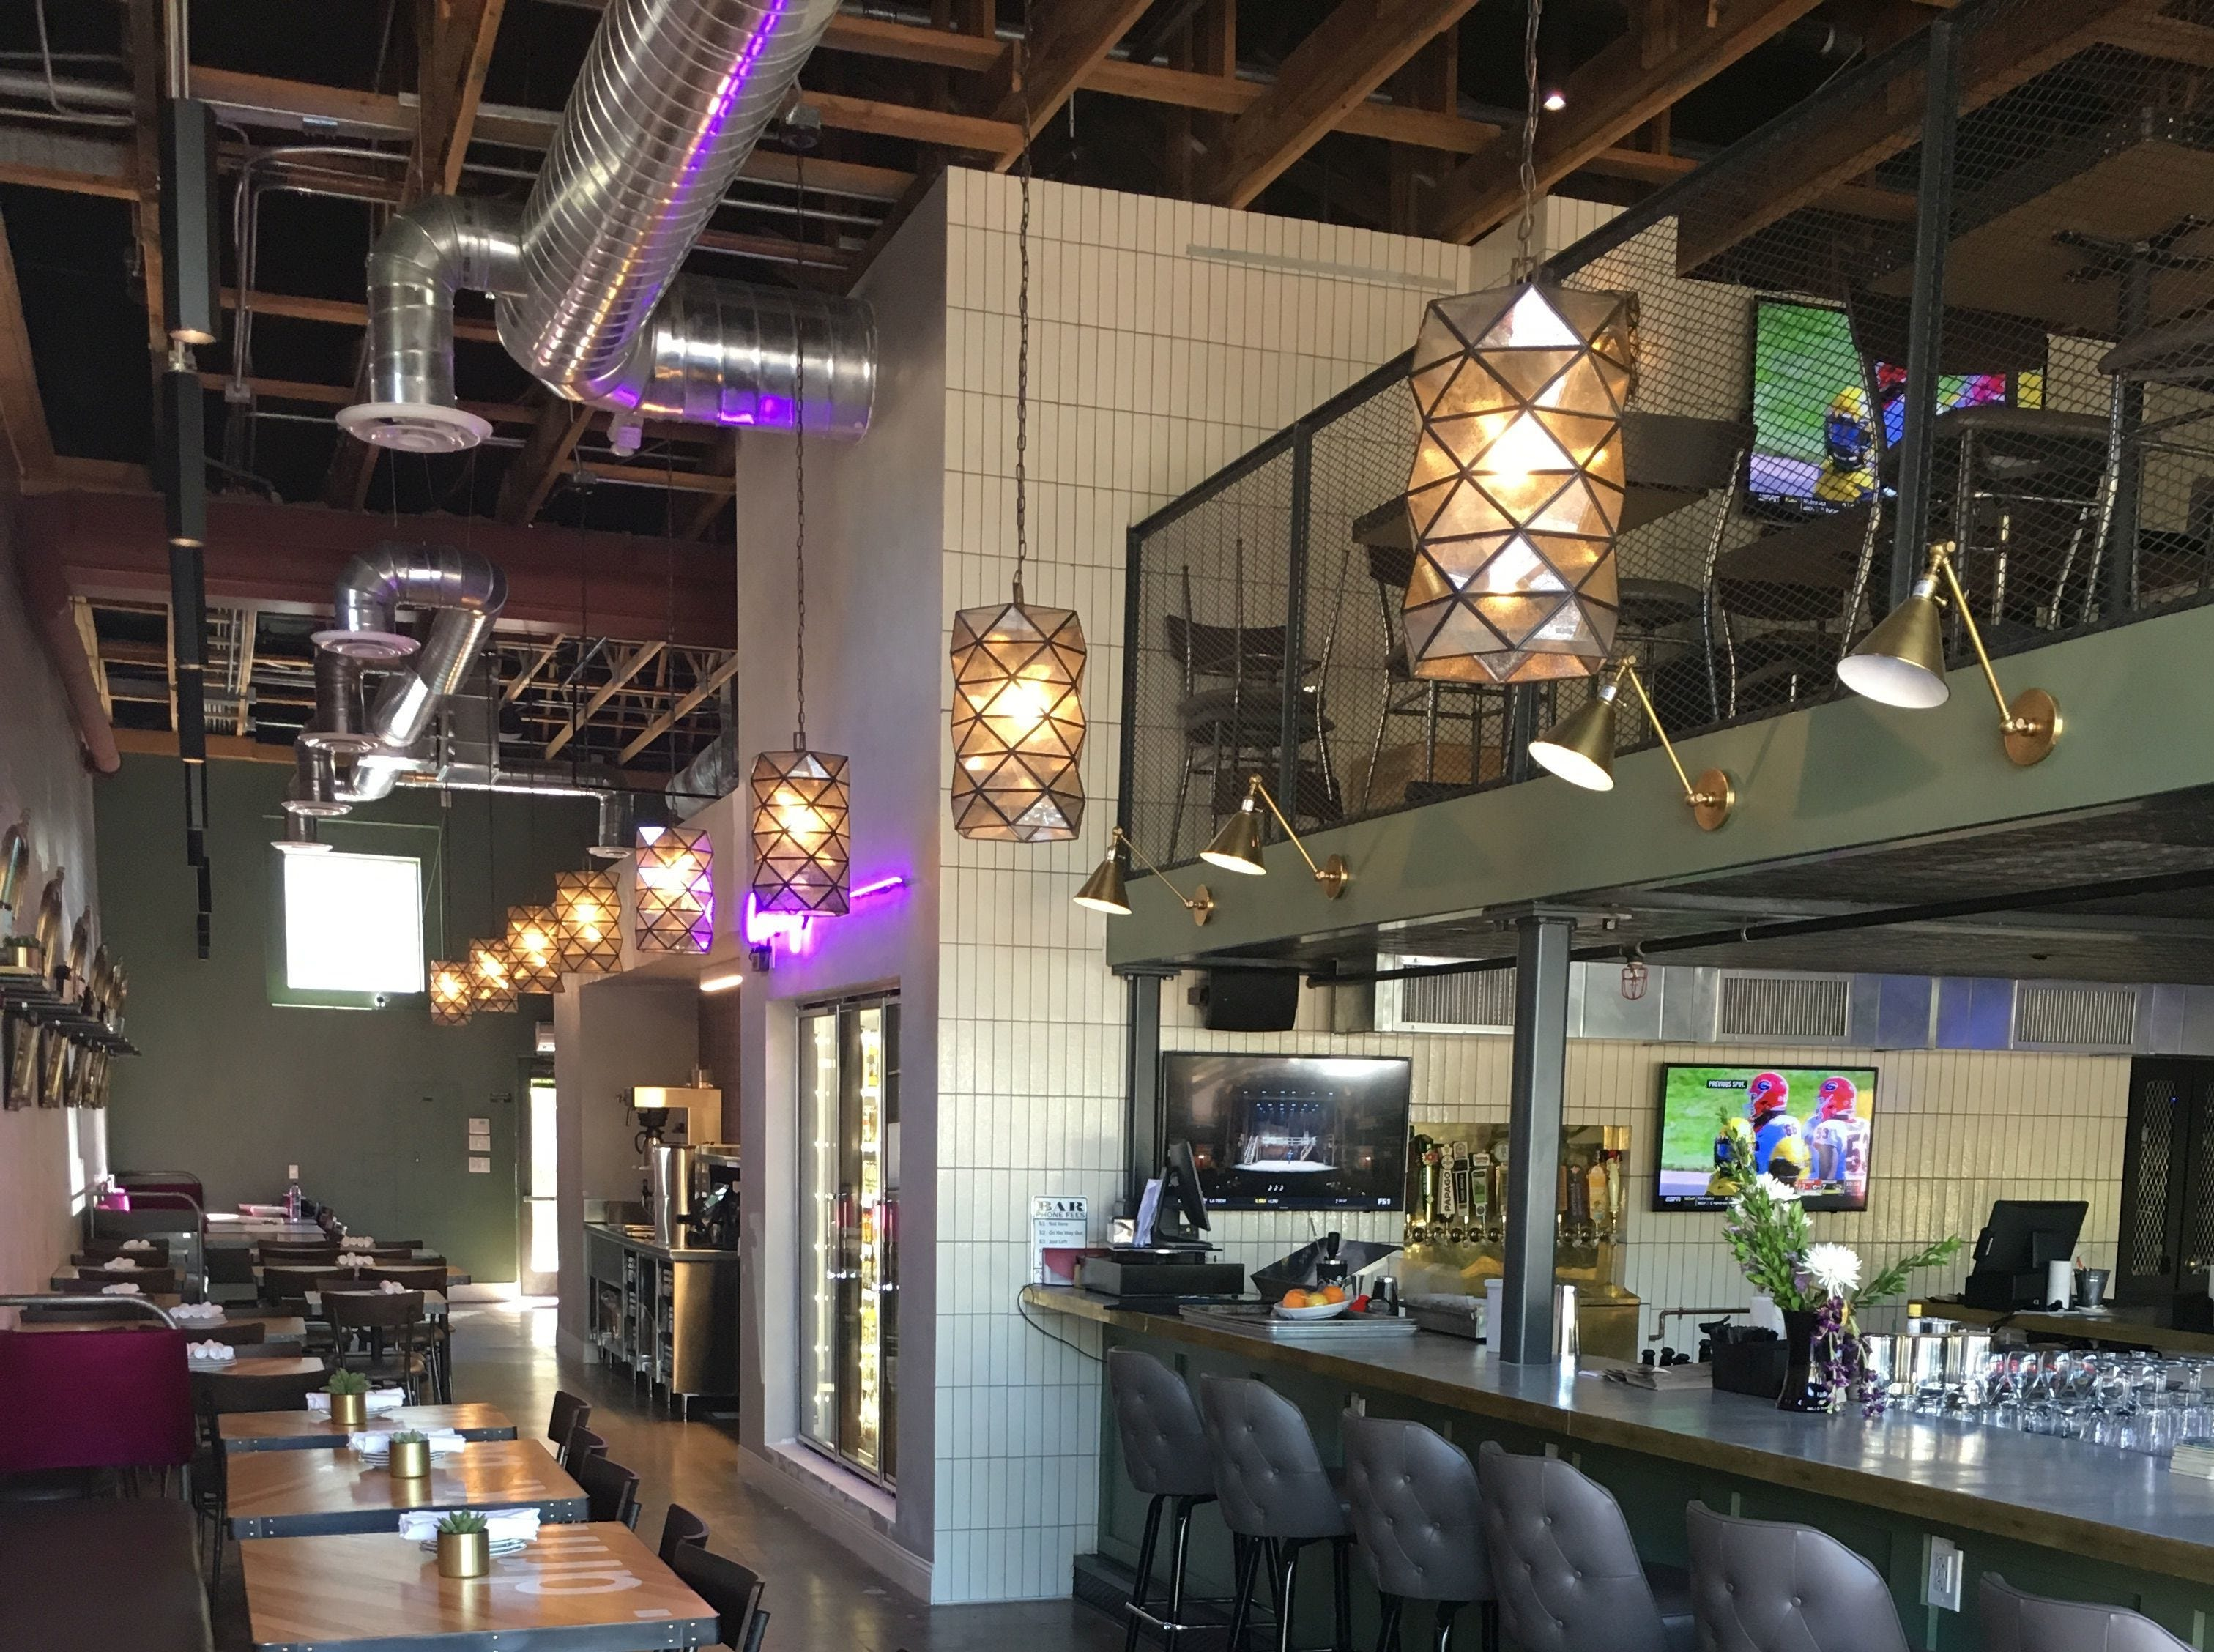 The Rott n' Grapes RoRo dining room, now open on Roosevelt Street and Third Avenue.